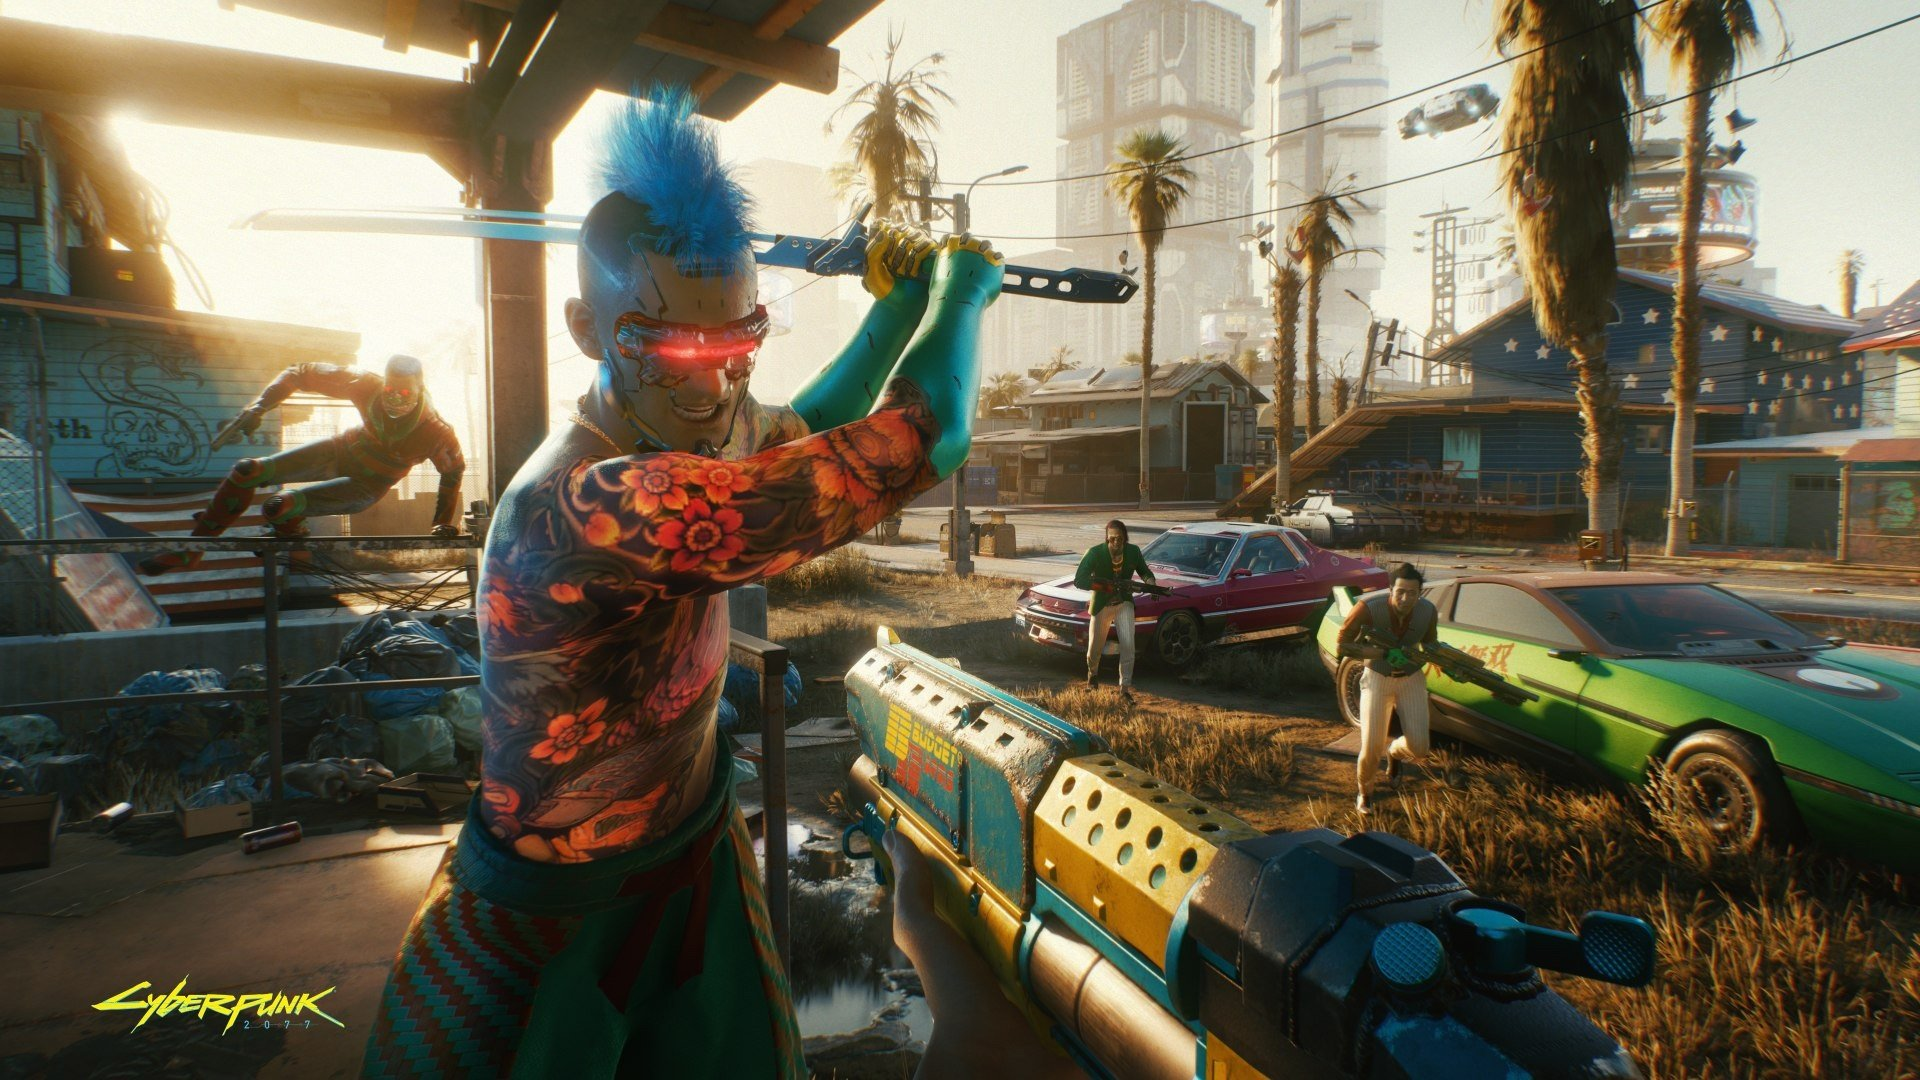 Cyberpunk 2077 hit with another small delay, but it'll still launch before the year's over screenshot